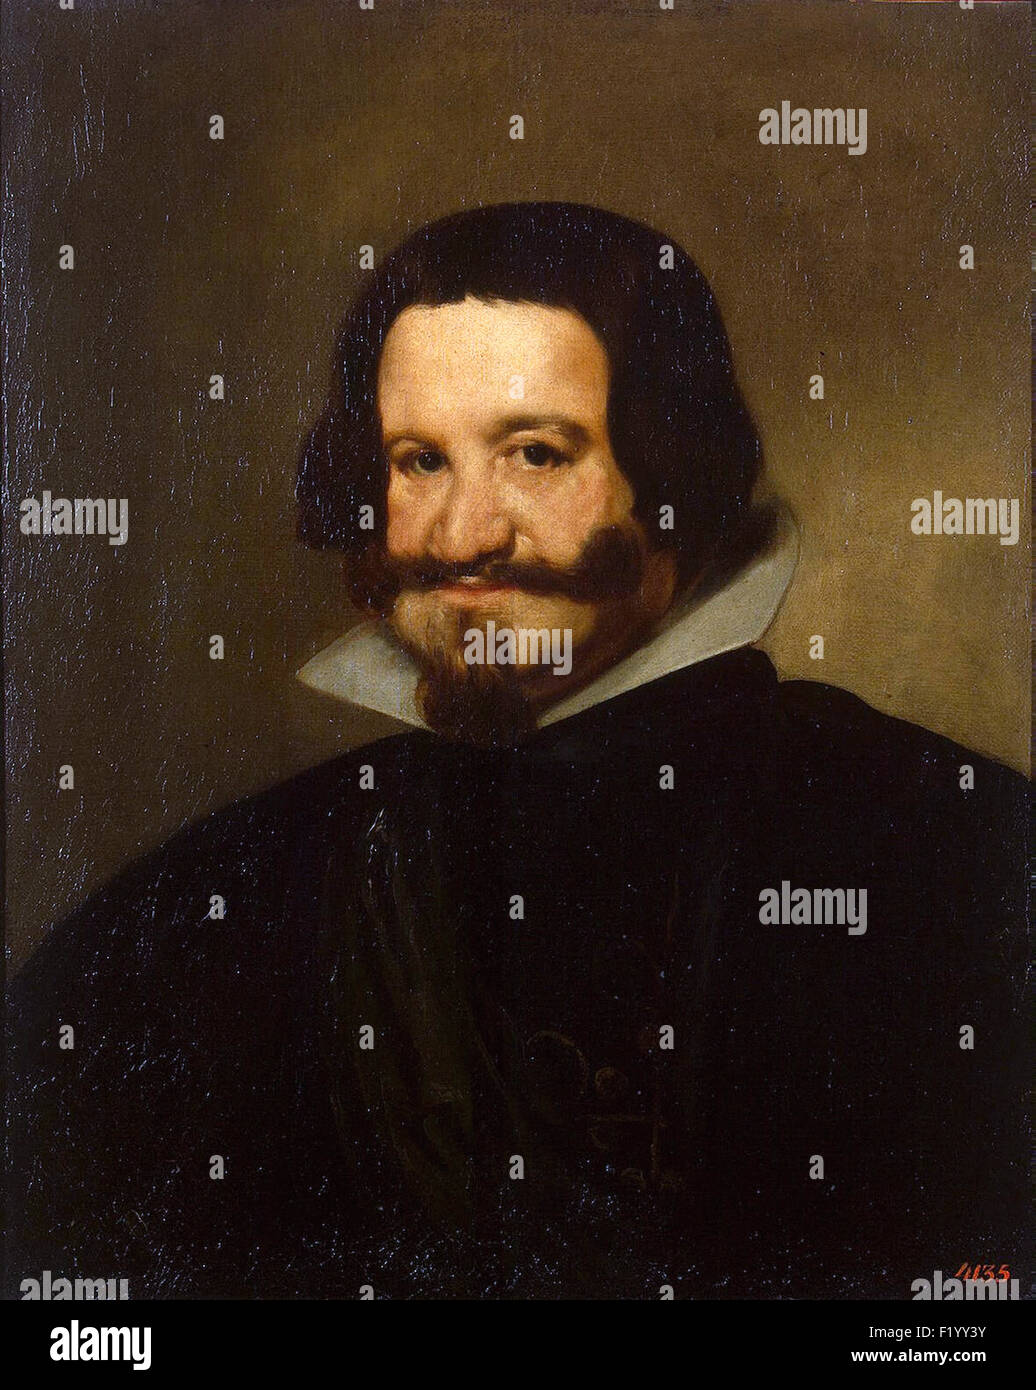 Diego Velázquez - Portrait of Count Duke Olivares - Stock Image